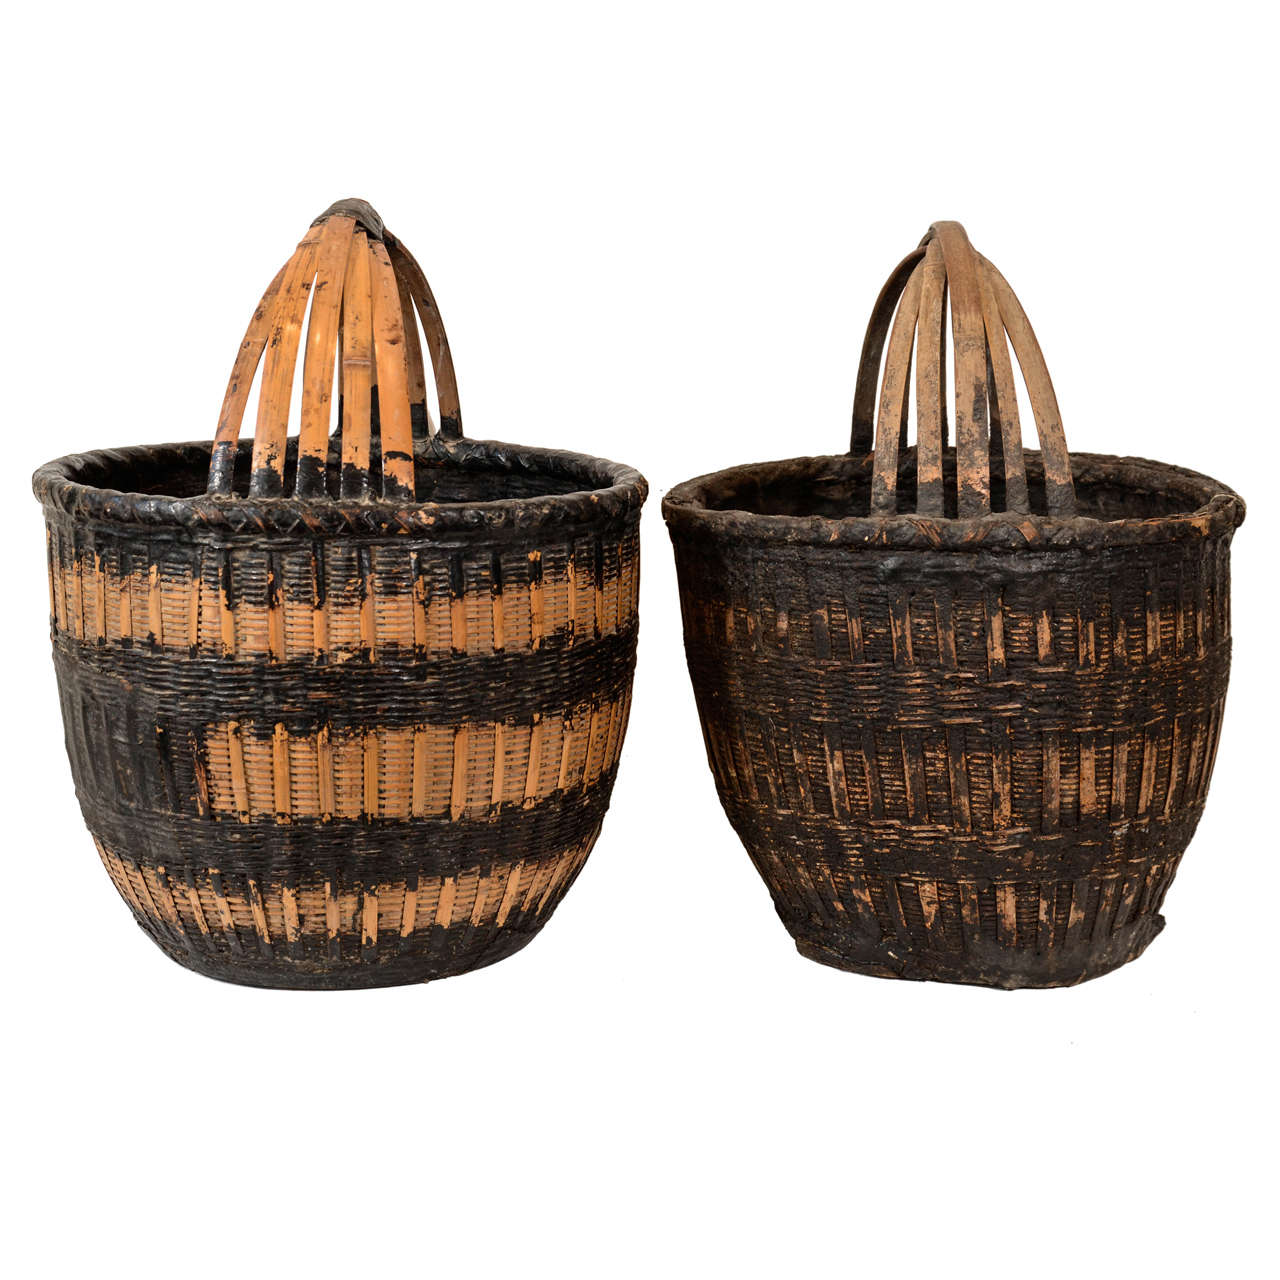 Antique Chinese Woven Food Baskets